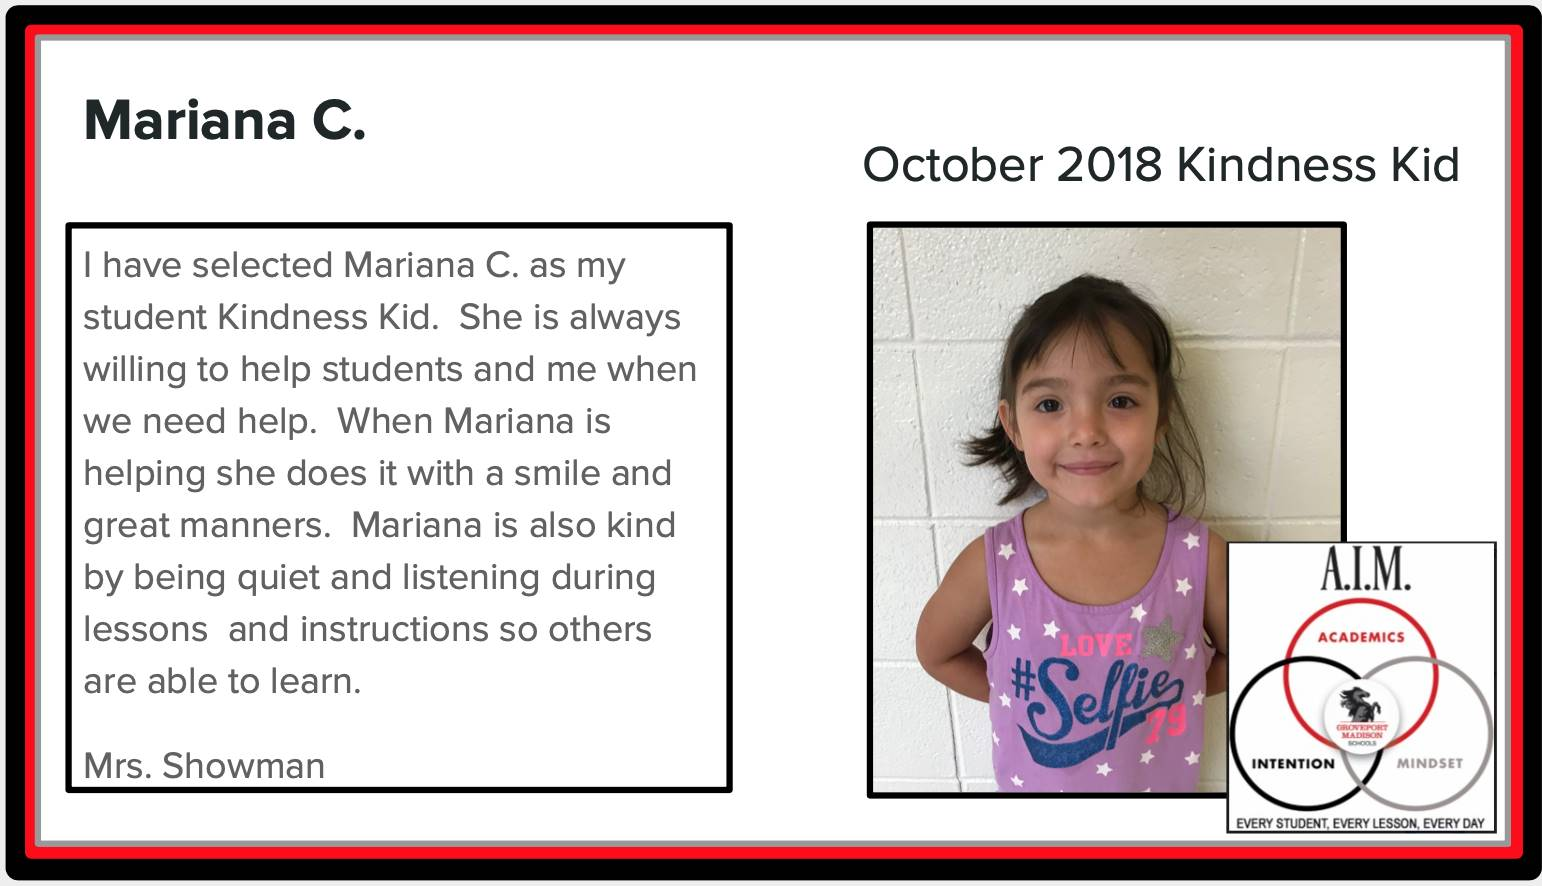 Kindness Kid Mariana